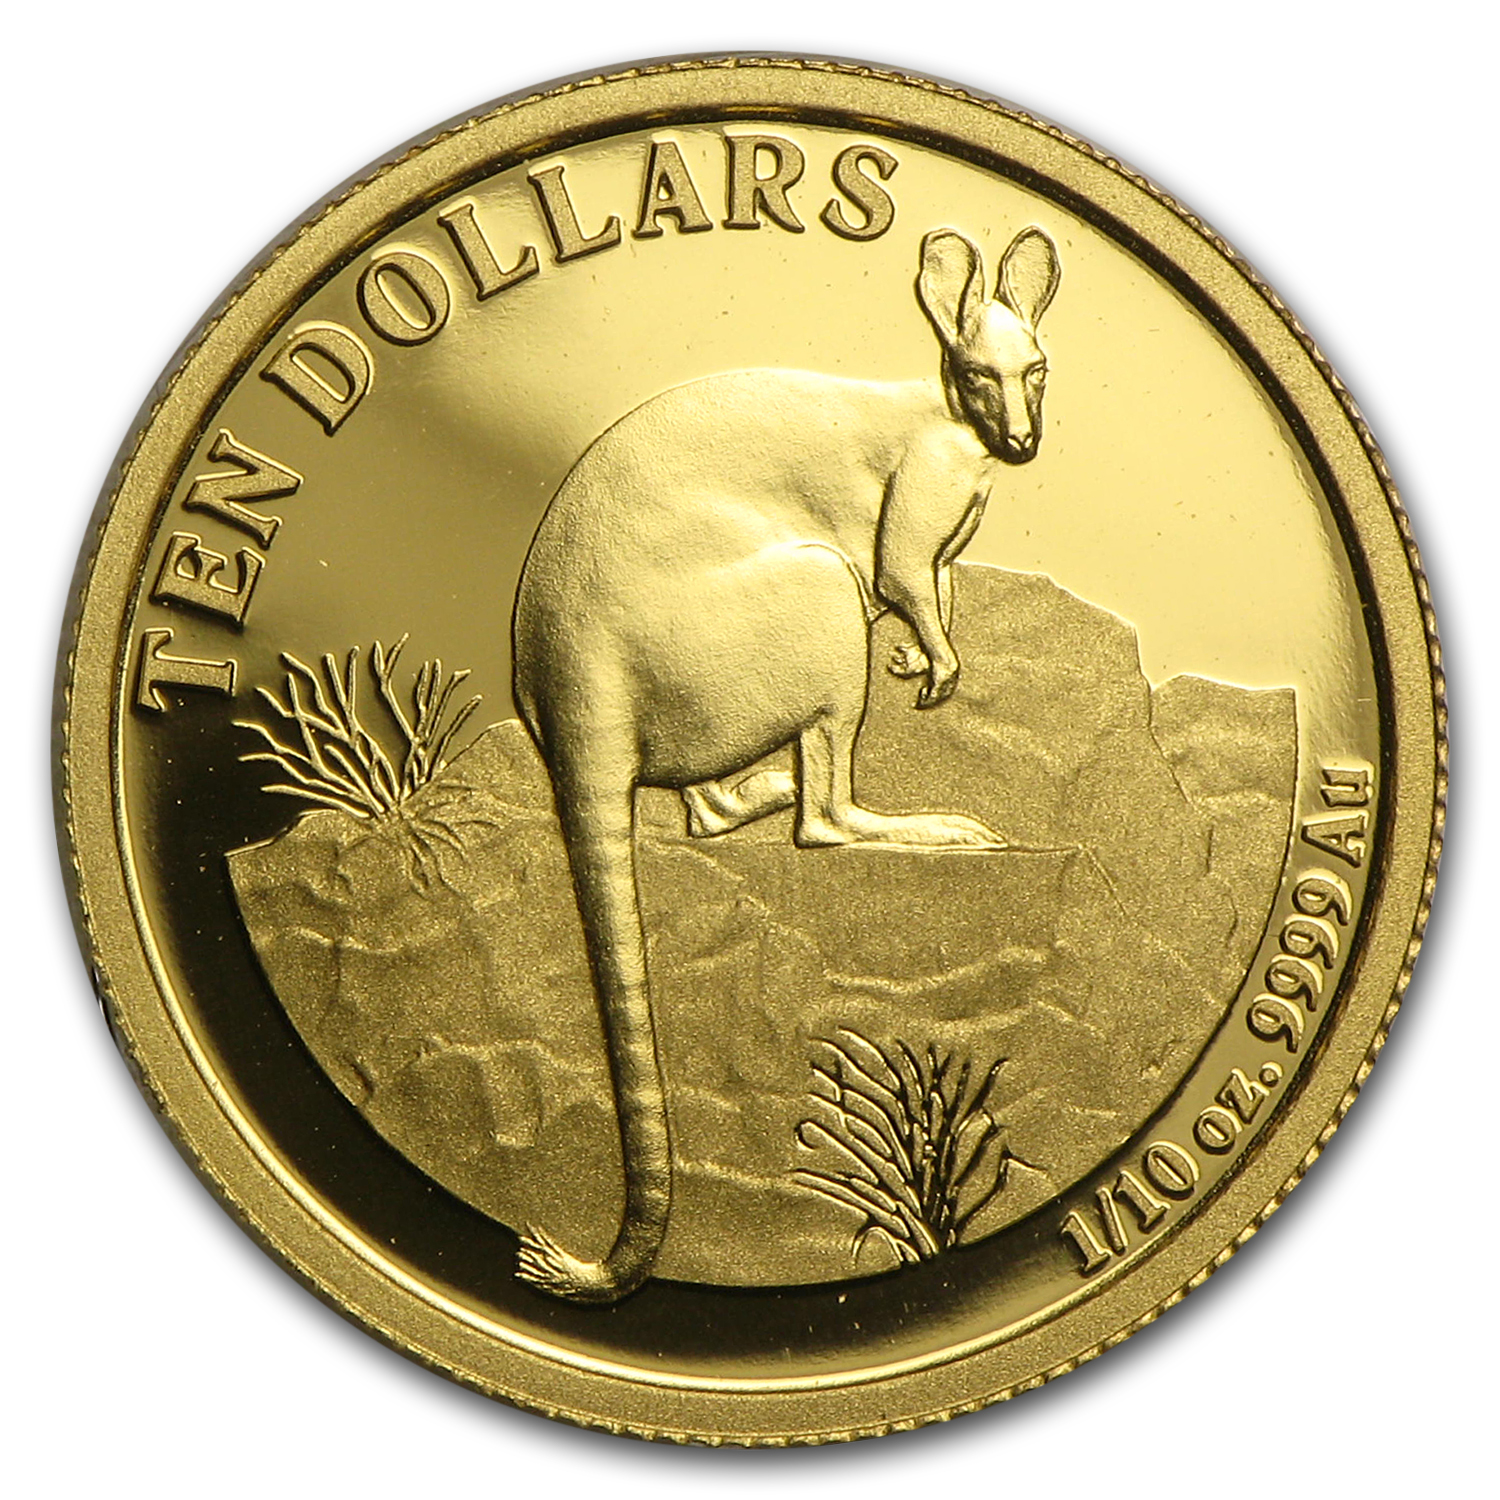 2010 Australia 1/10 oz Proof Gold Kangaroo